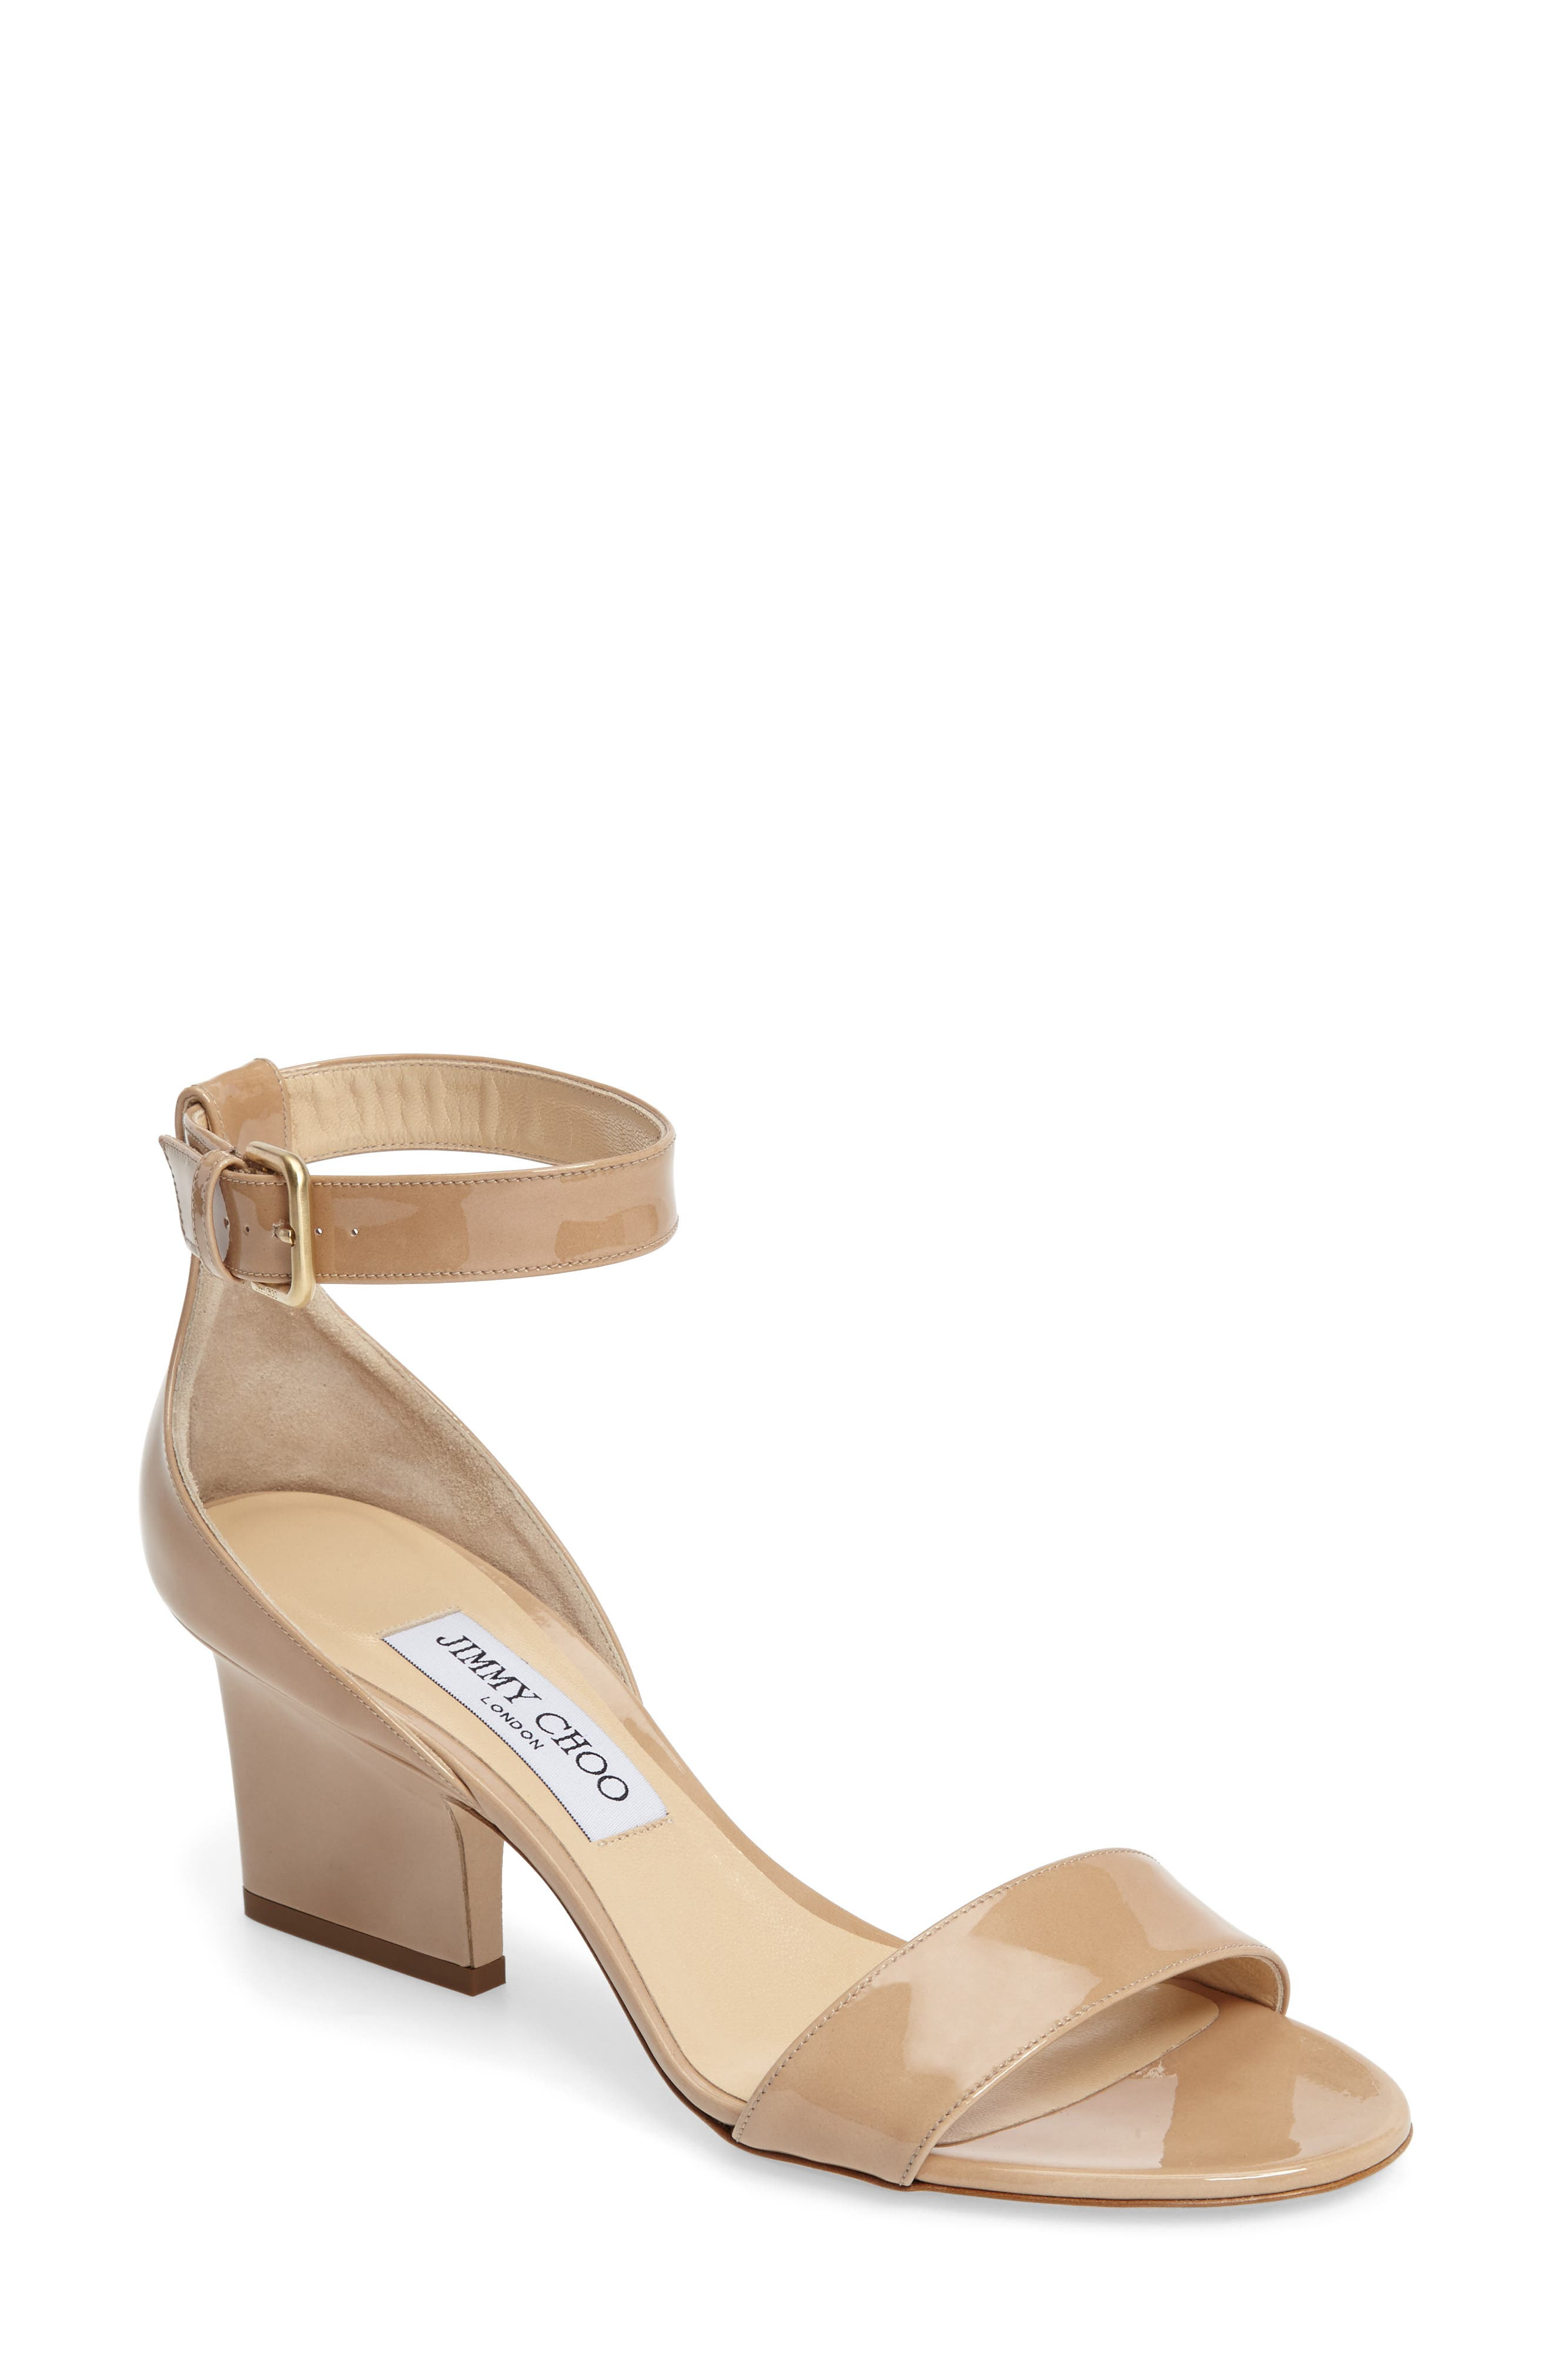 Edina Ankle Strap Sandal,                             Main thumbnail 1, color,                             NUDE PATENT